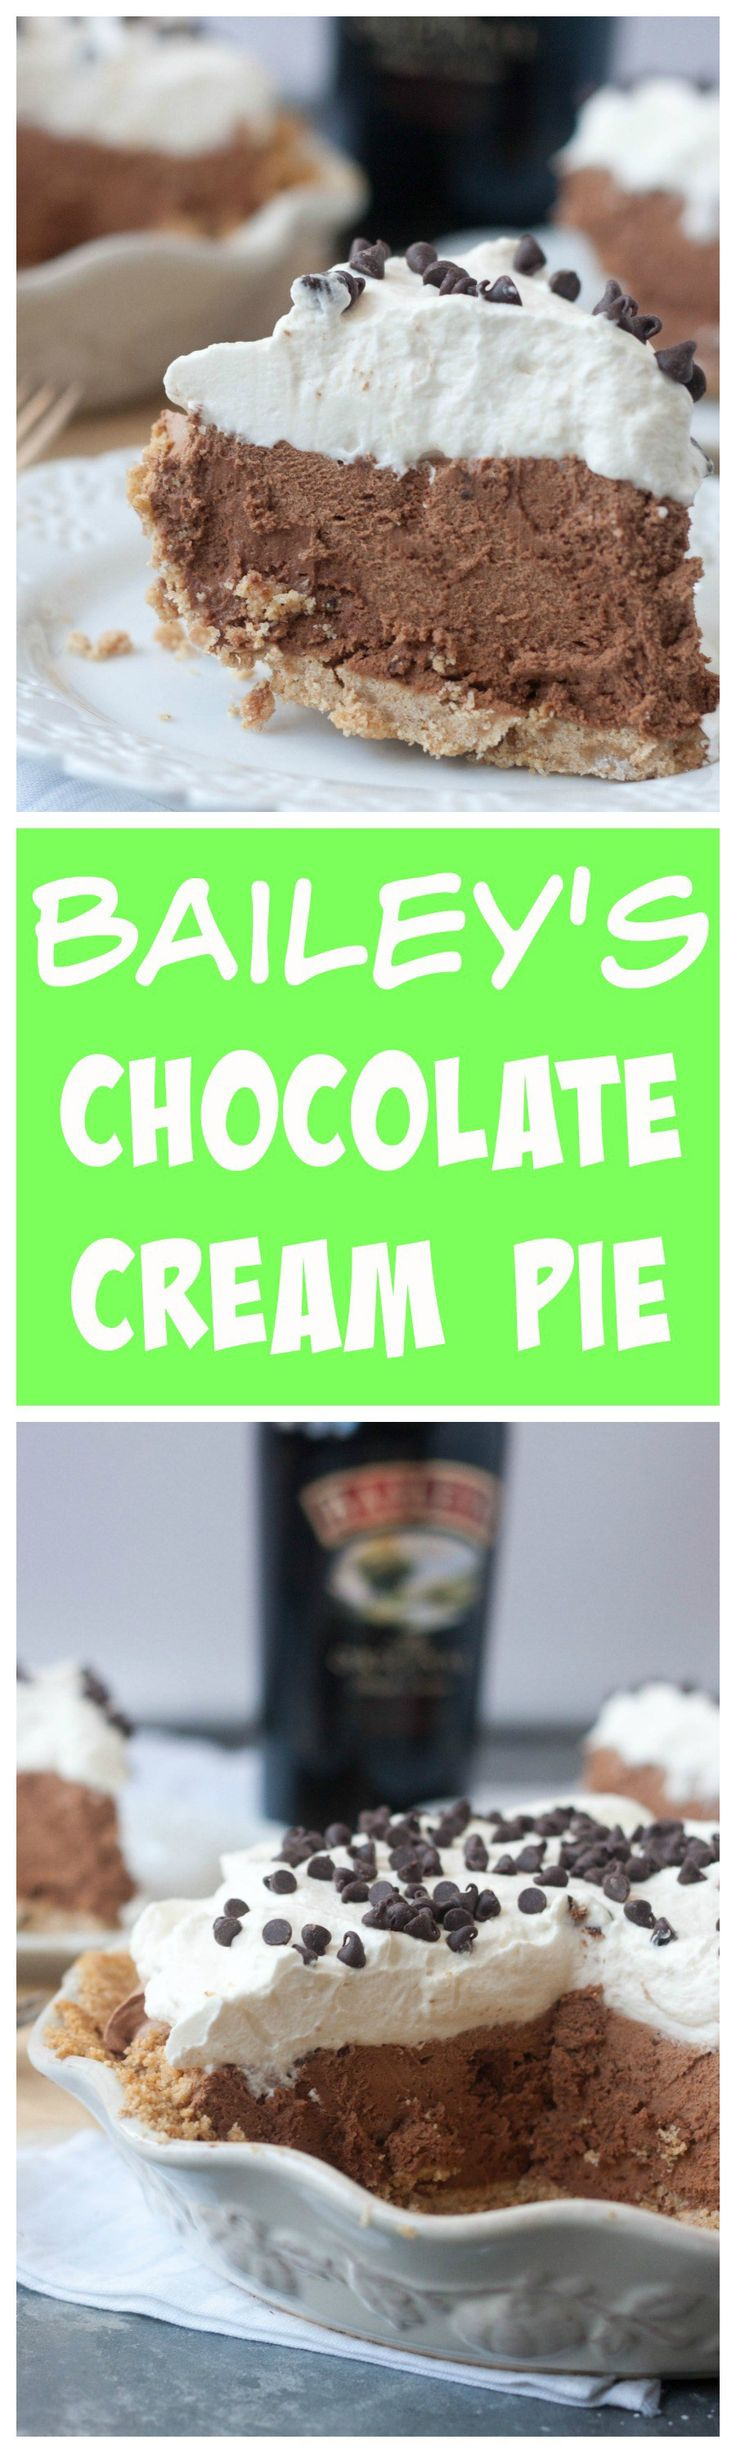 Bailey's Chocolate Cream Pie - a chocolate cream pie kicked up a notch by the addition of Bailey's Irish cream! Only 6 ingredients for this filling! Pin now for later! From Boston Girl Bakes